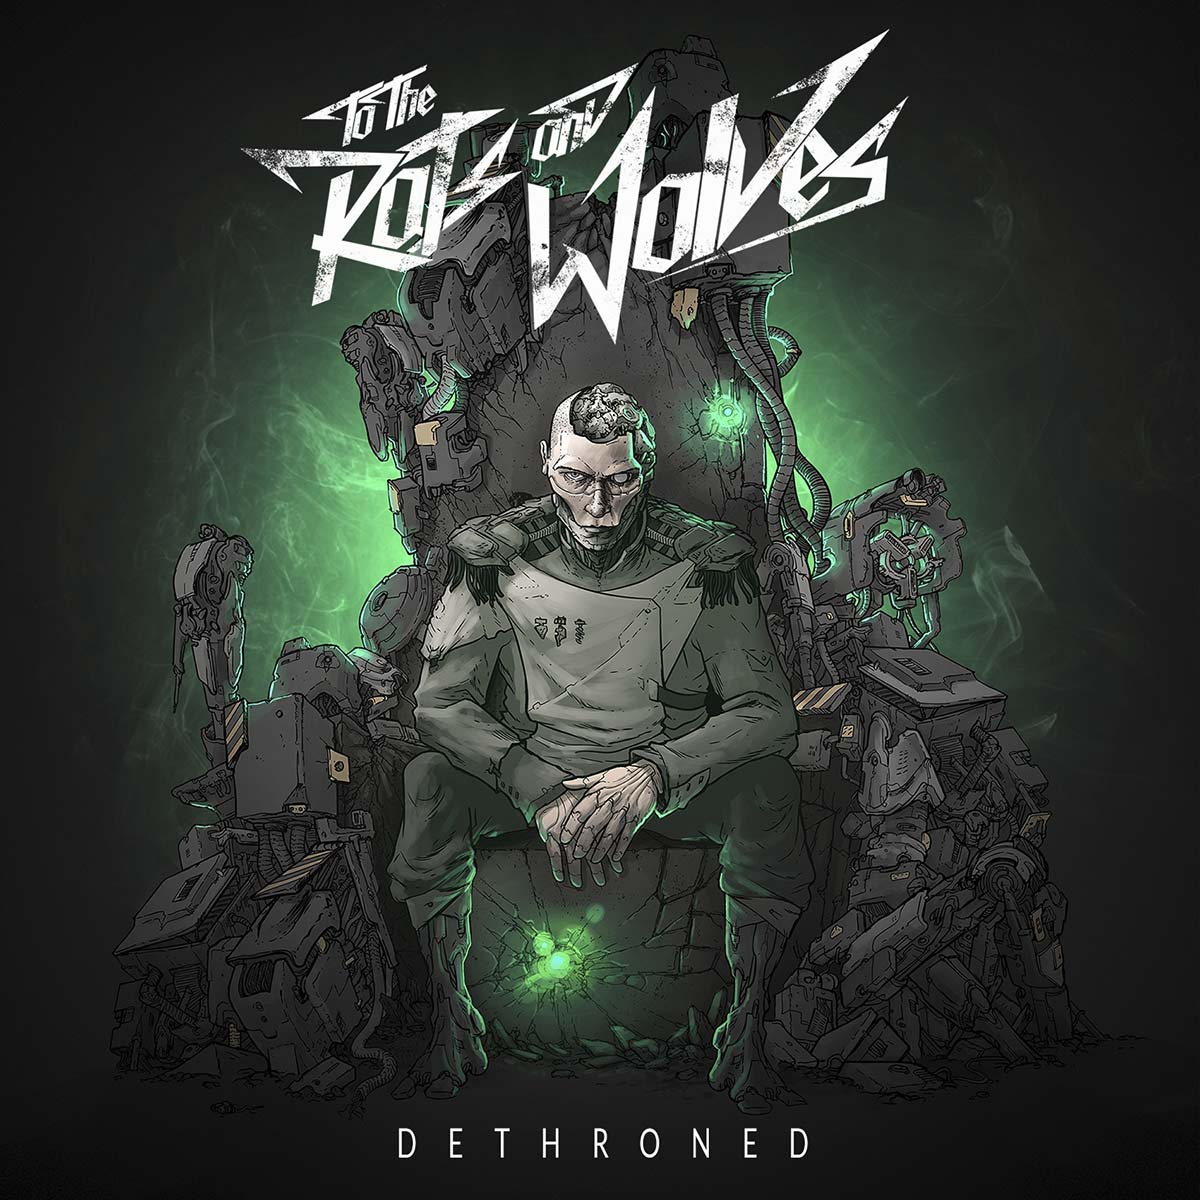 To The Rats And Wolves: Dethroned (2016) Book Cover